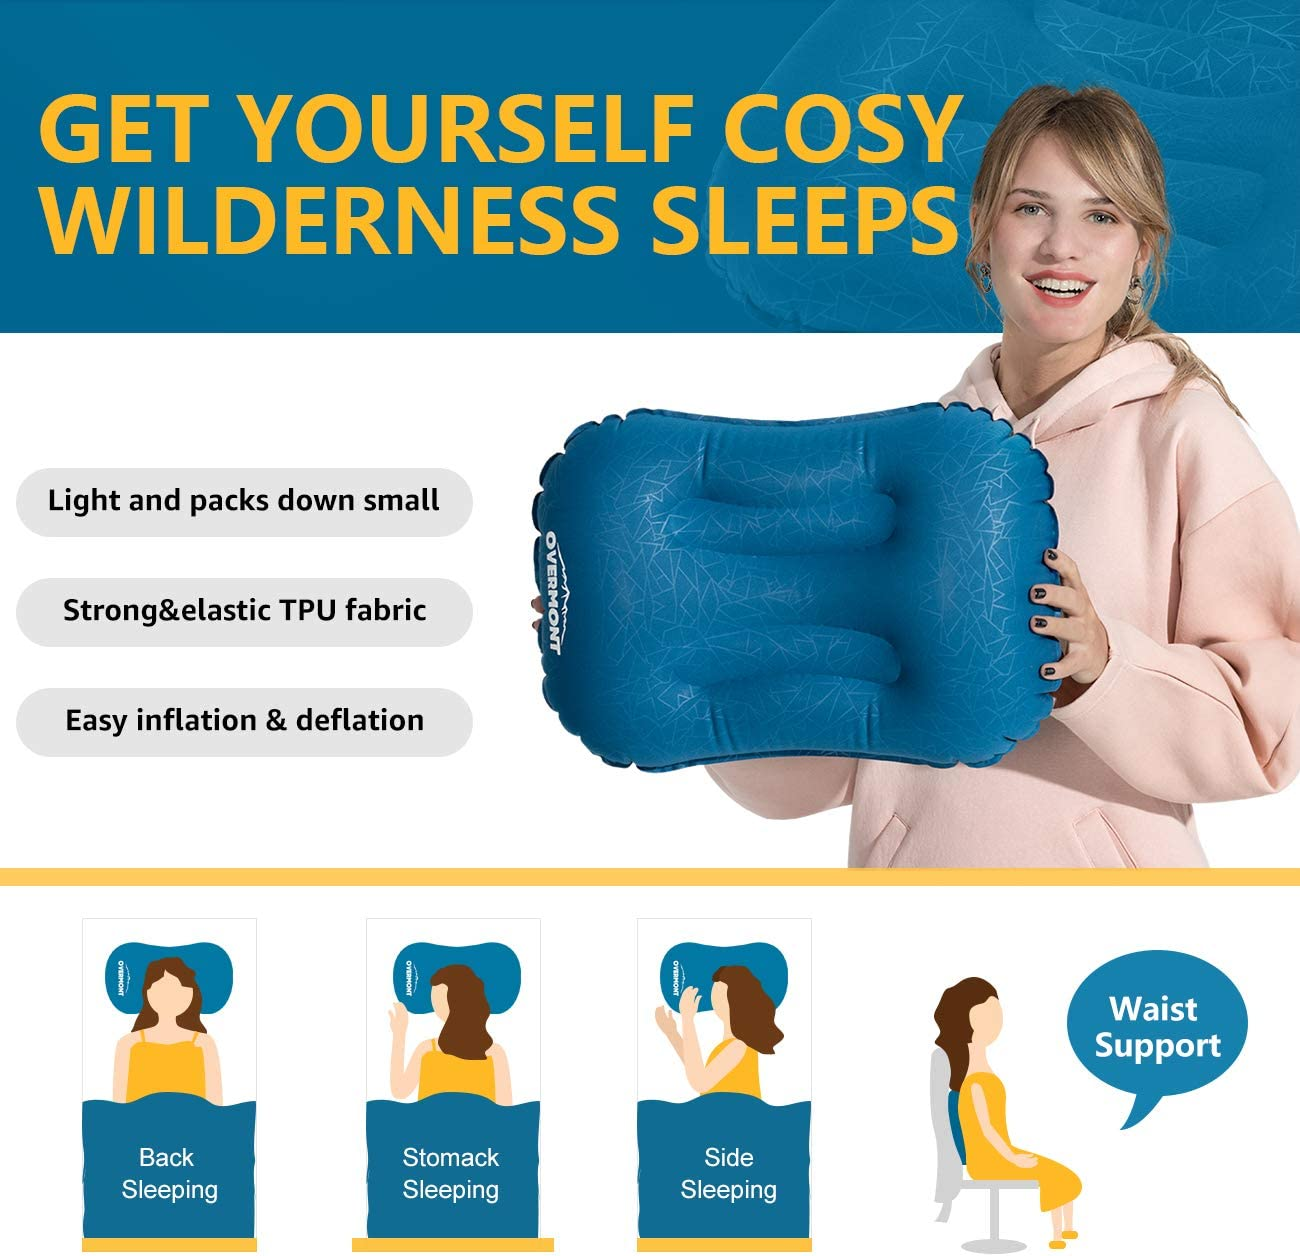 Compact Hiking Backpacking Comfortable Overmont Ultralight Inflatable Camping Travel Air Pillow Compressible Ergonomic Pillow for Neck /& Lumber Support While Camp